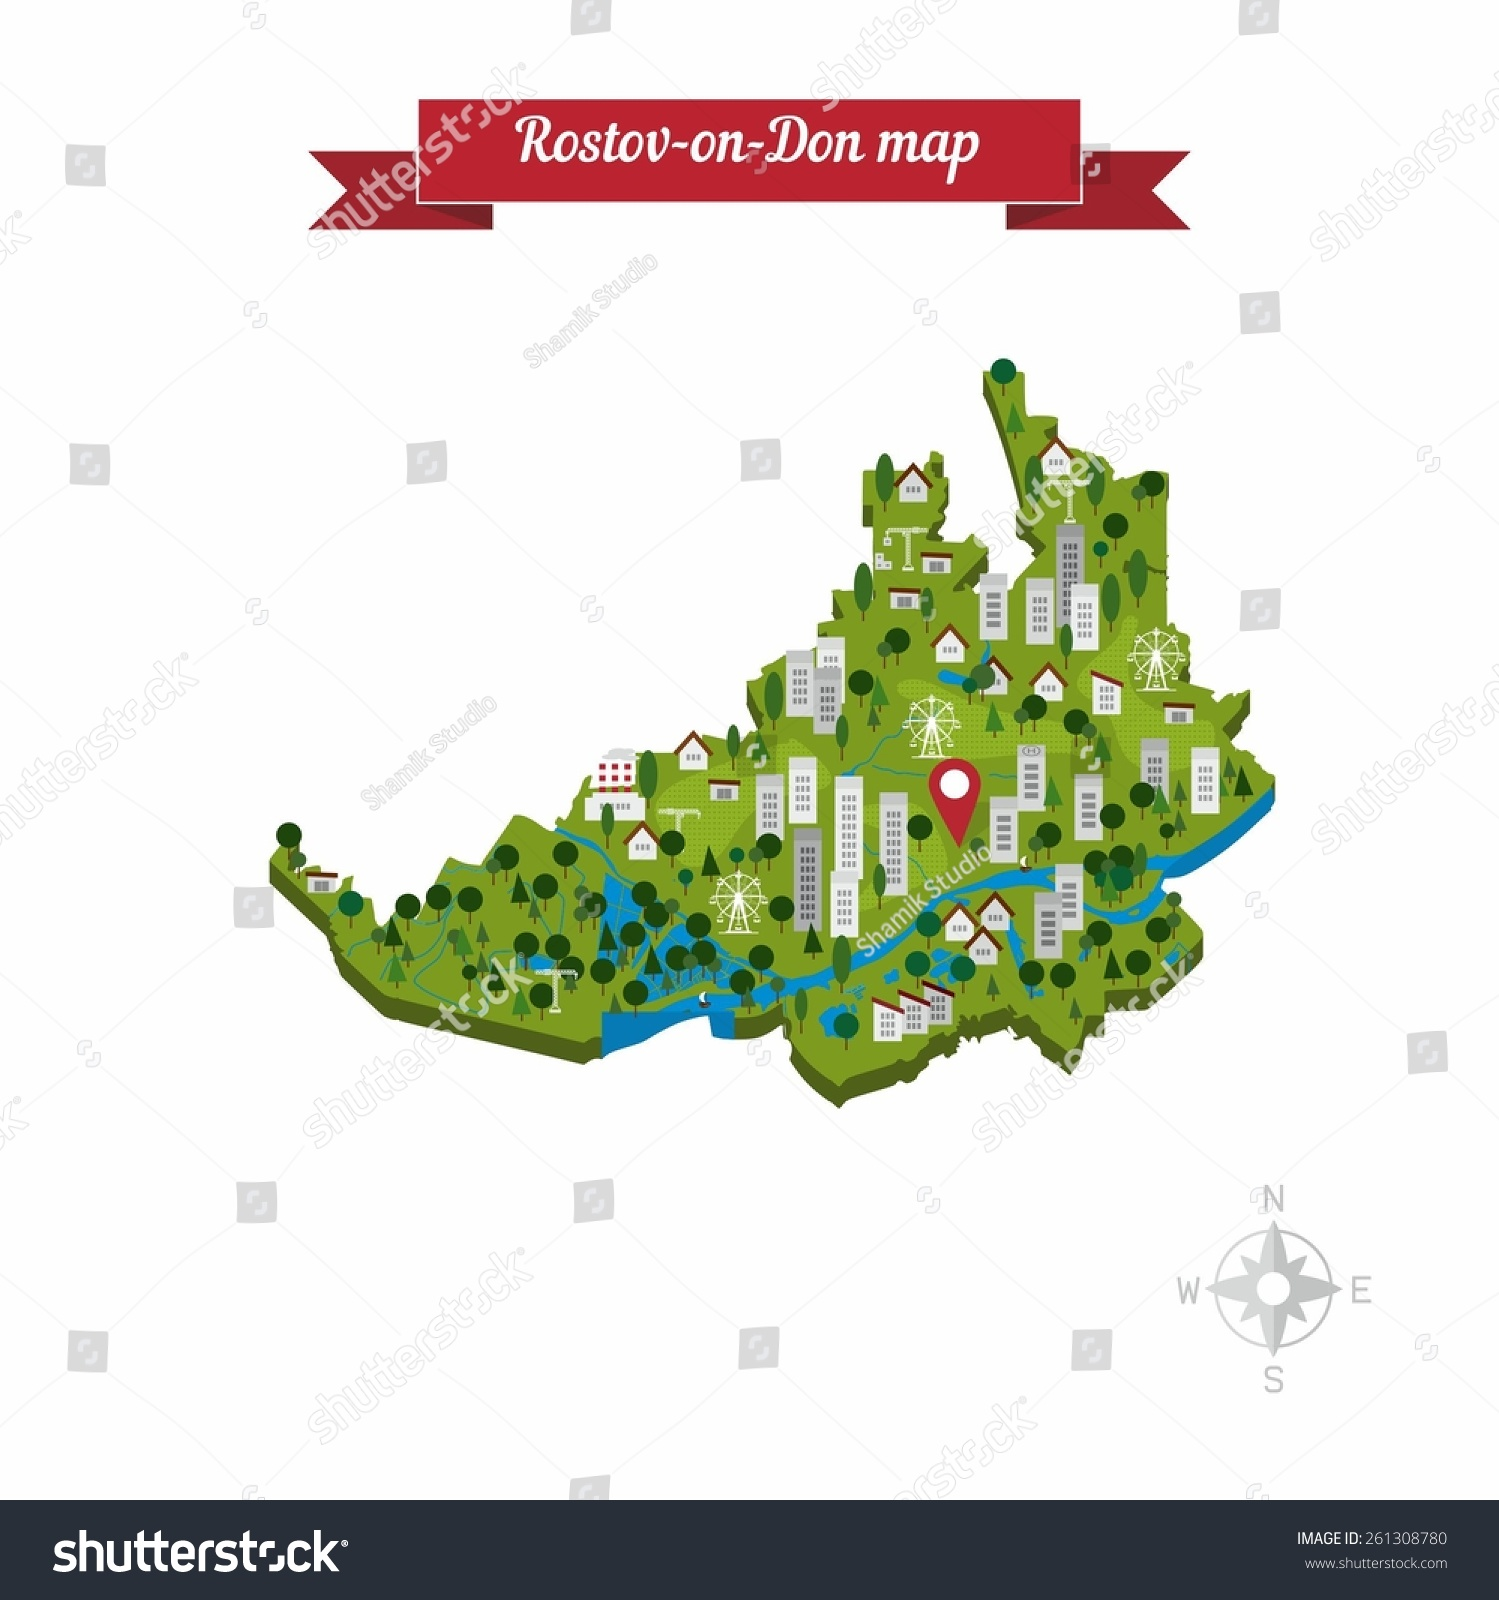 Rostovon Don Russia Cartoon Map Flat Style Stock Vector (Royalty ...